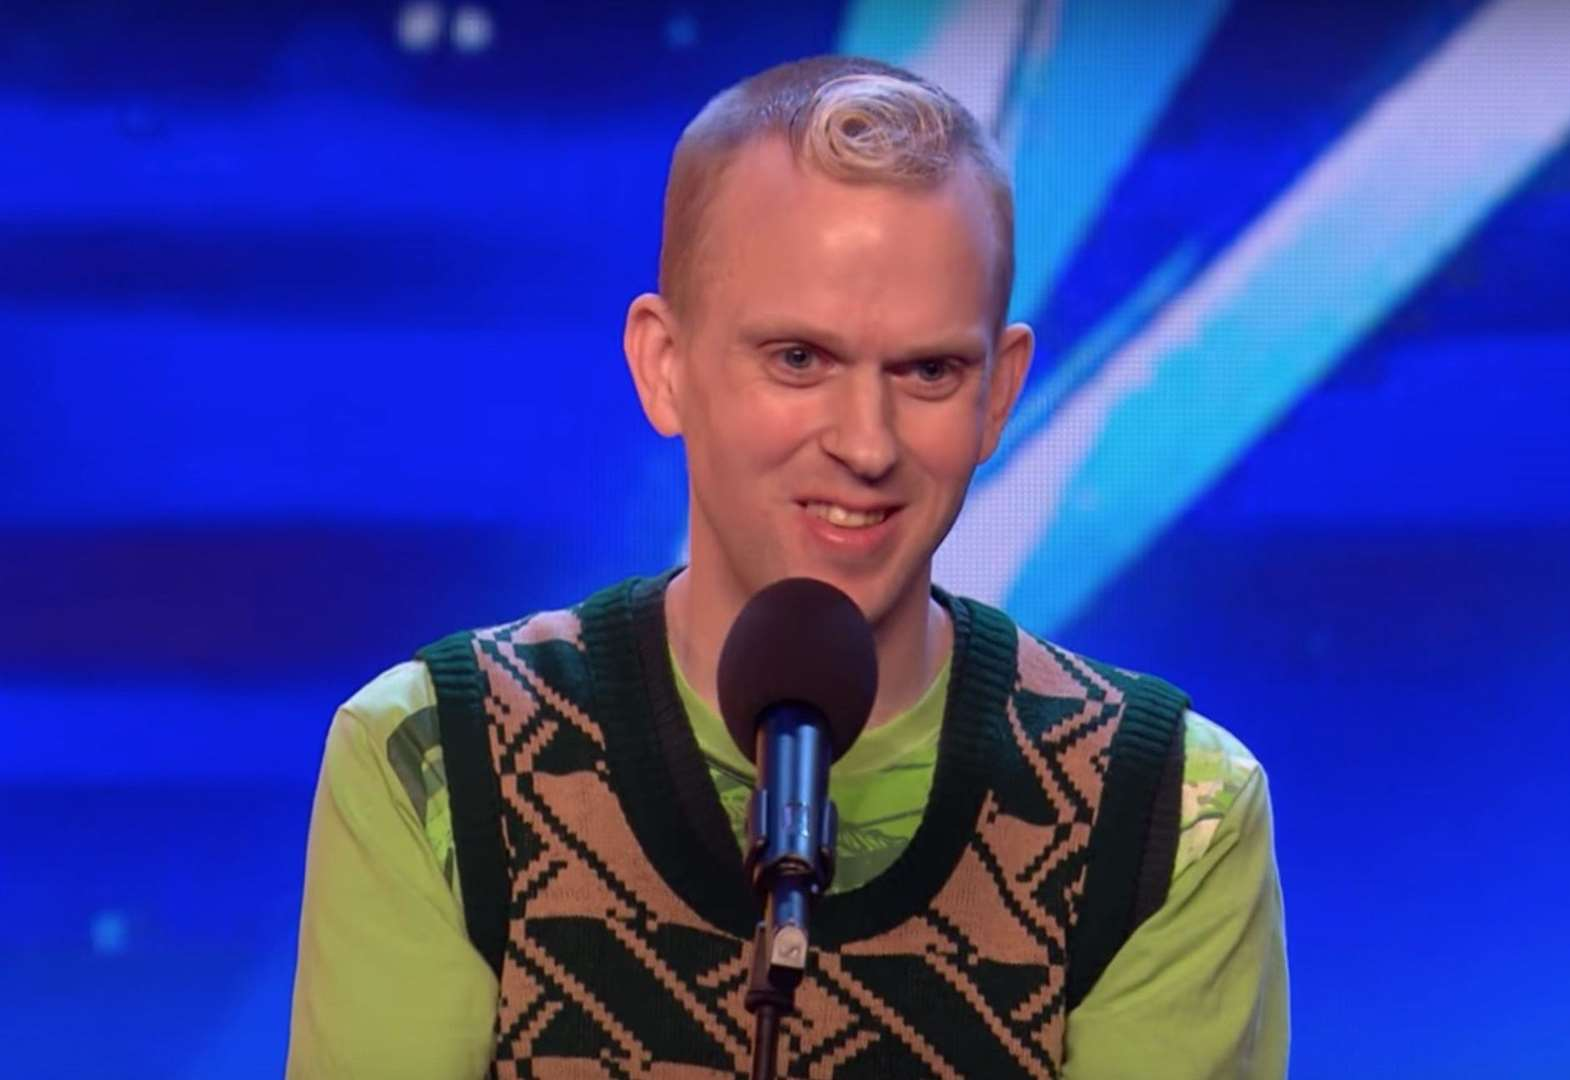 Britain's Got Talent star Robert White to perform in Bishop's Stortford